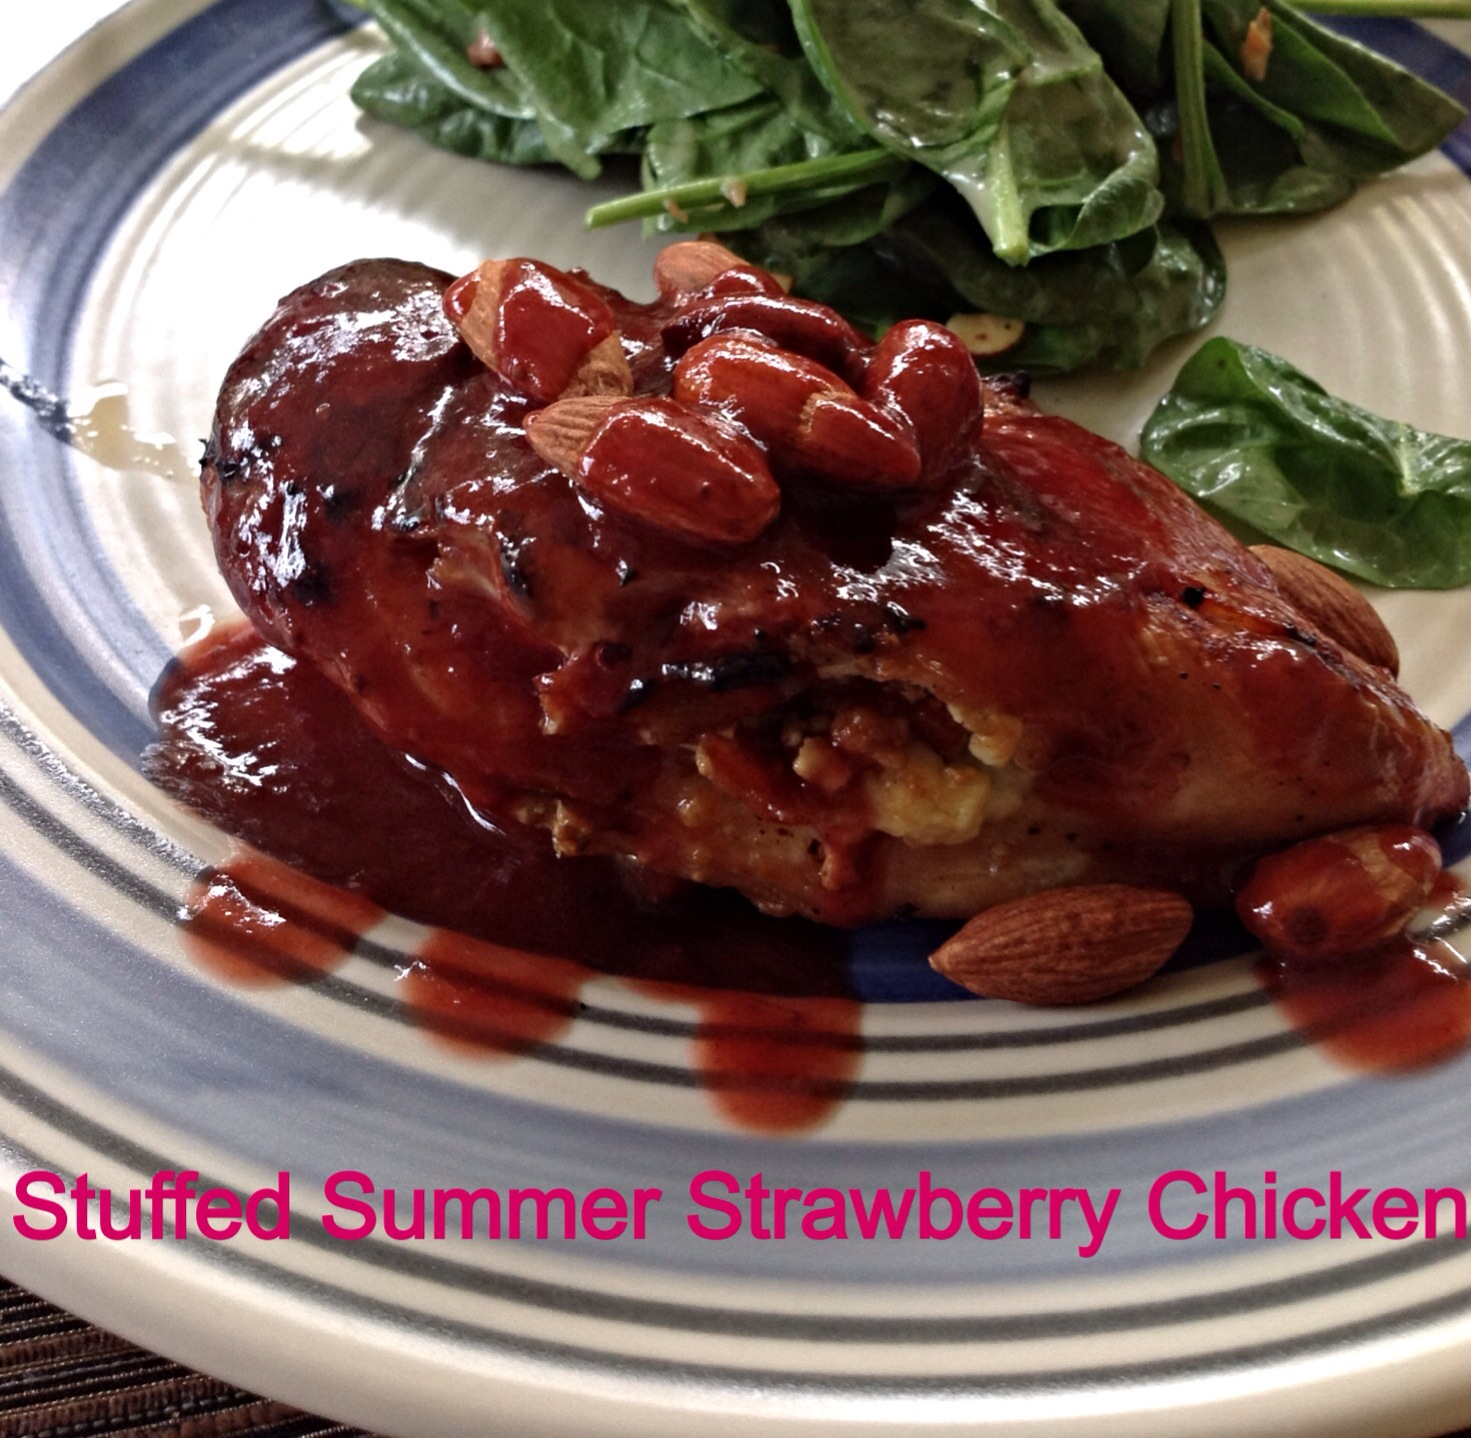 Gorgonzola and bacon stuffed grilled chicken with strawberry sauce